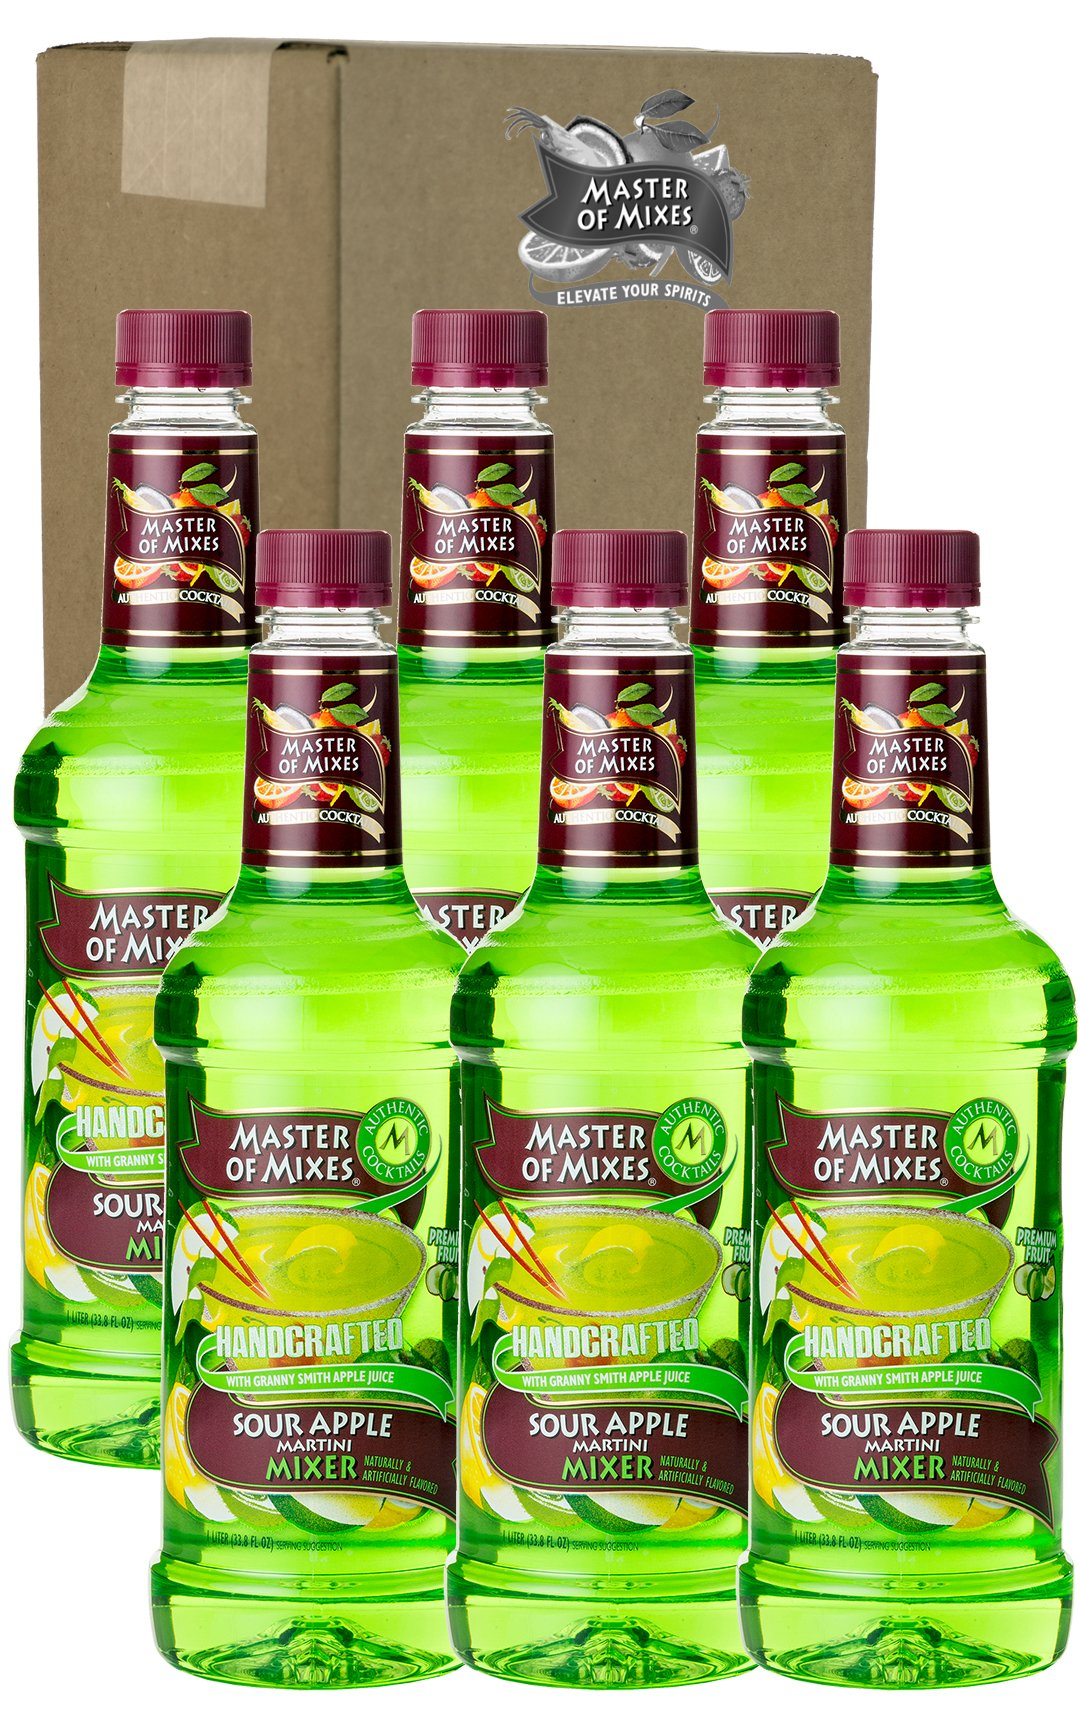 Master of Mixes Martini Mix Sour Apple, 33.81-Ounce (Pack of 6)